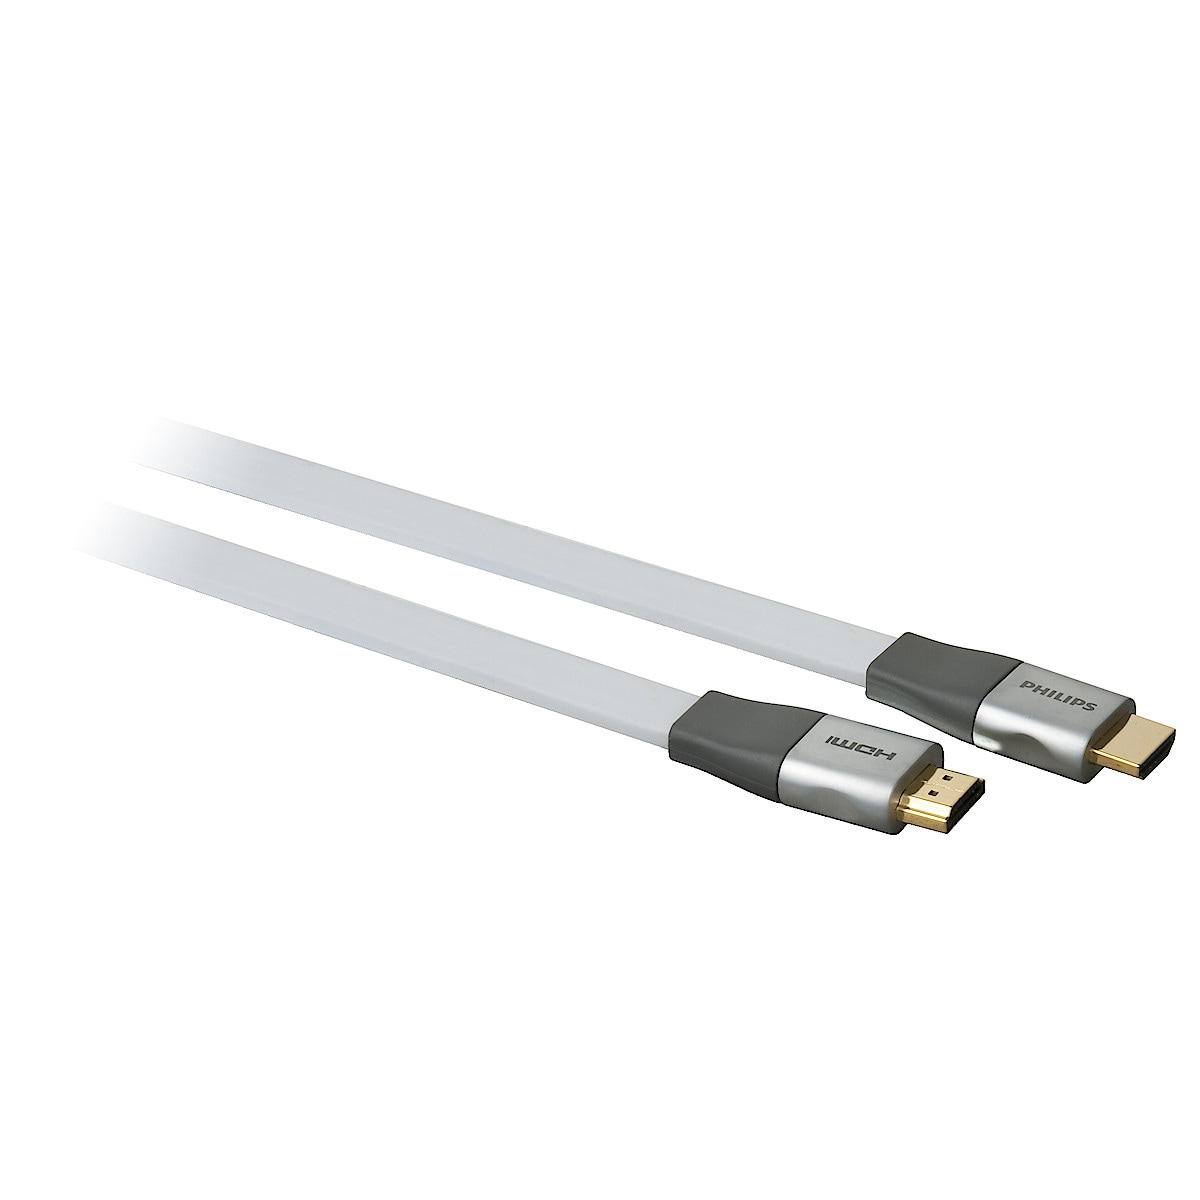 Philips Flat HDMI Cable